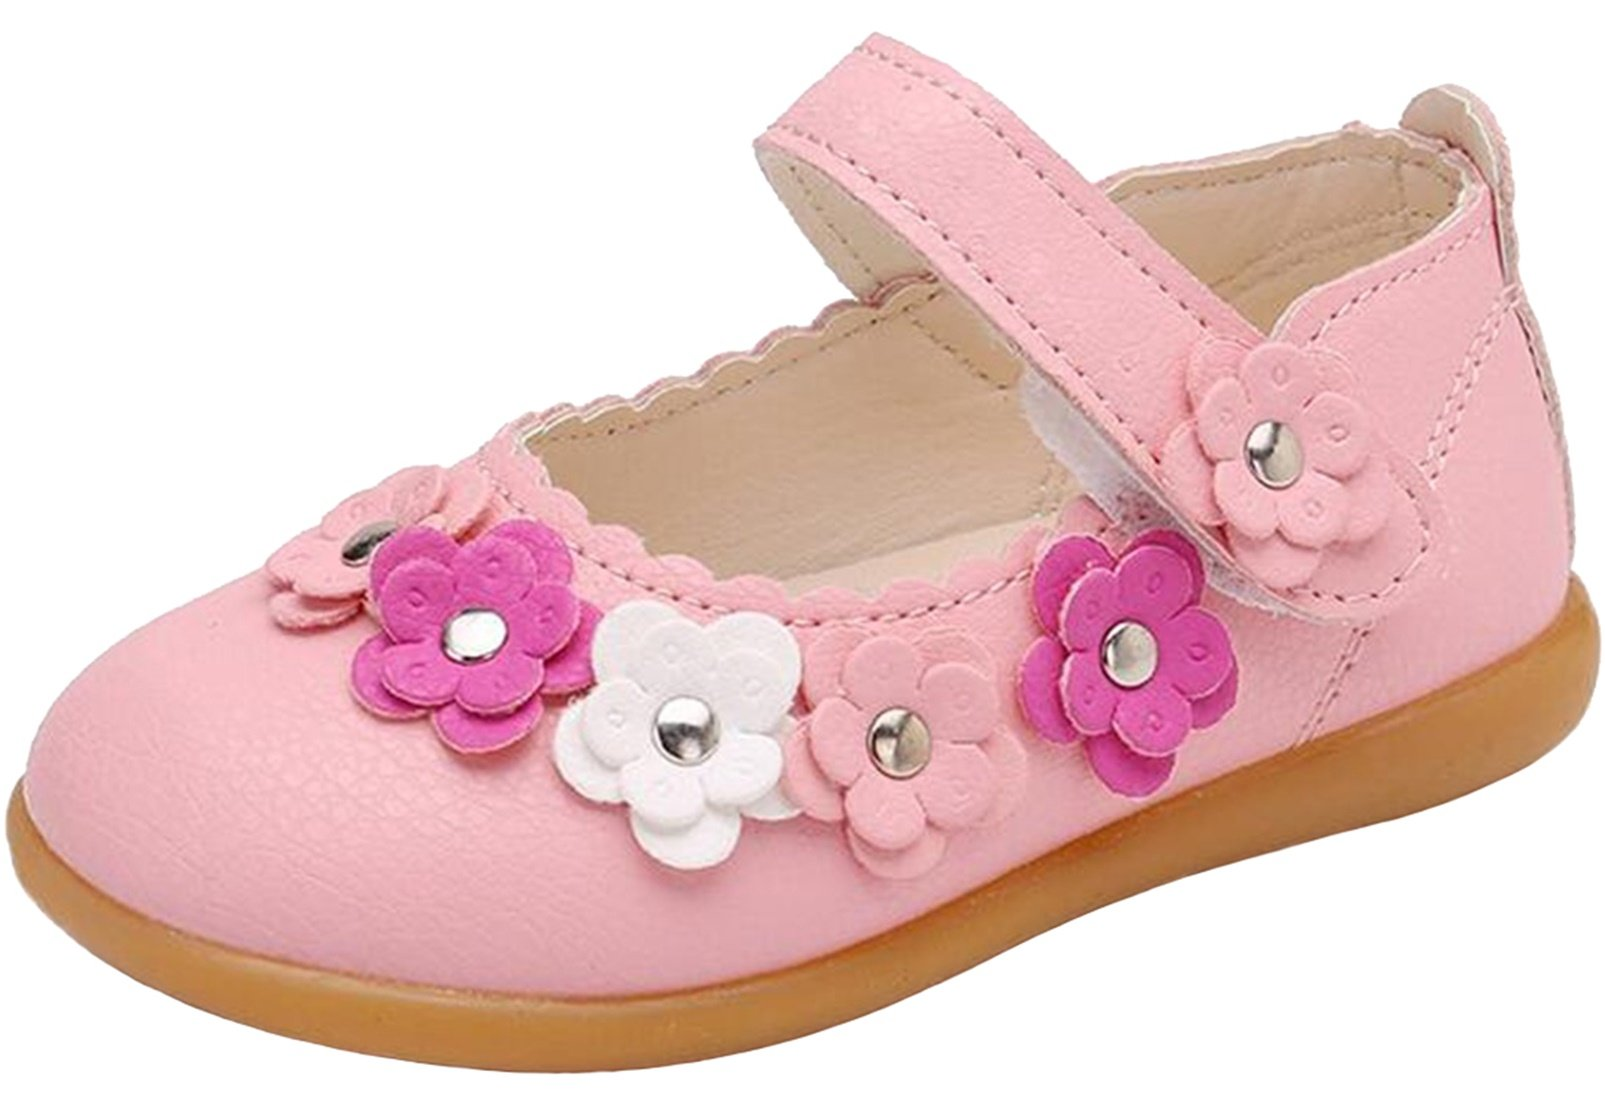 PPXID Girl's Princess Flat Mary Jane Flowers Dress Oxford Shoes(Toddler/Little Kid)-Pink 7 US Size